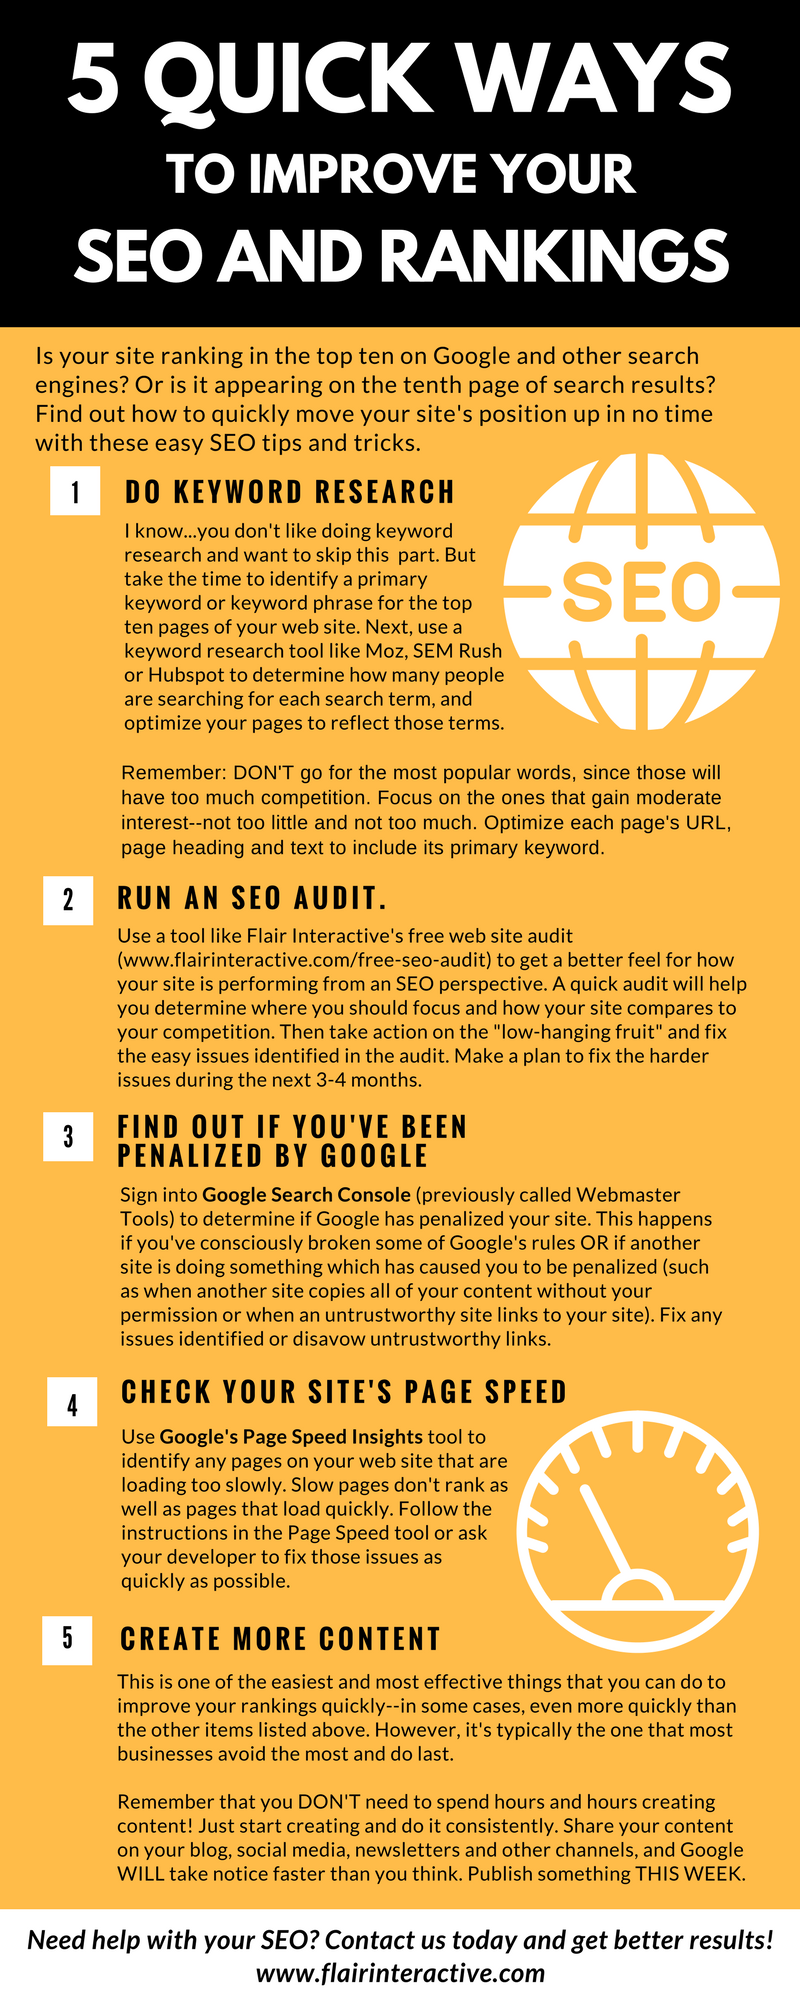 5 quick ways to improve your SEO and rankings.png